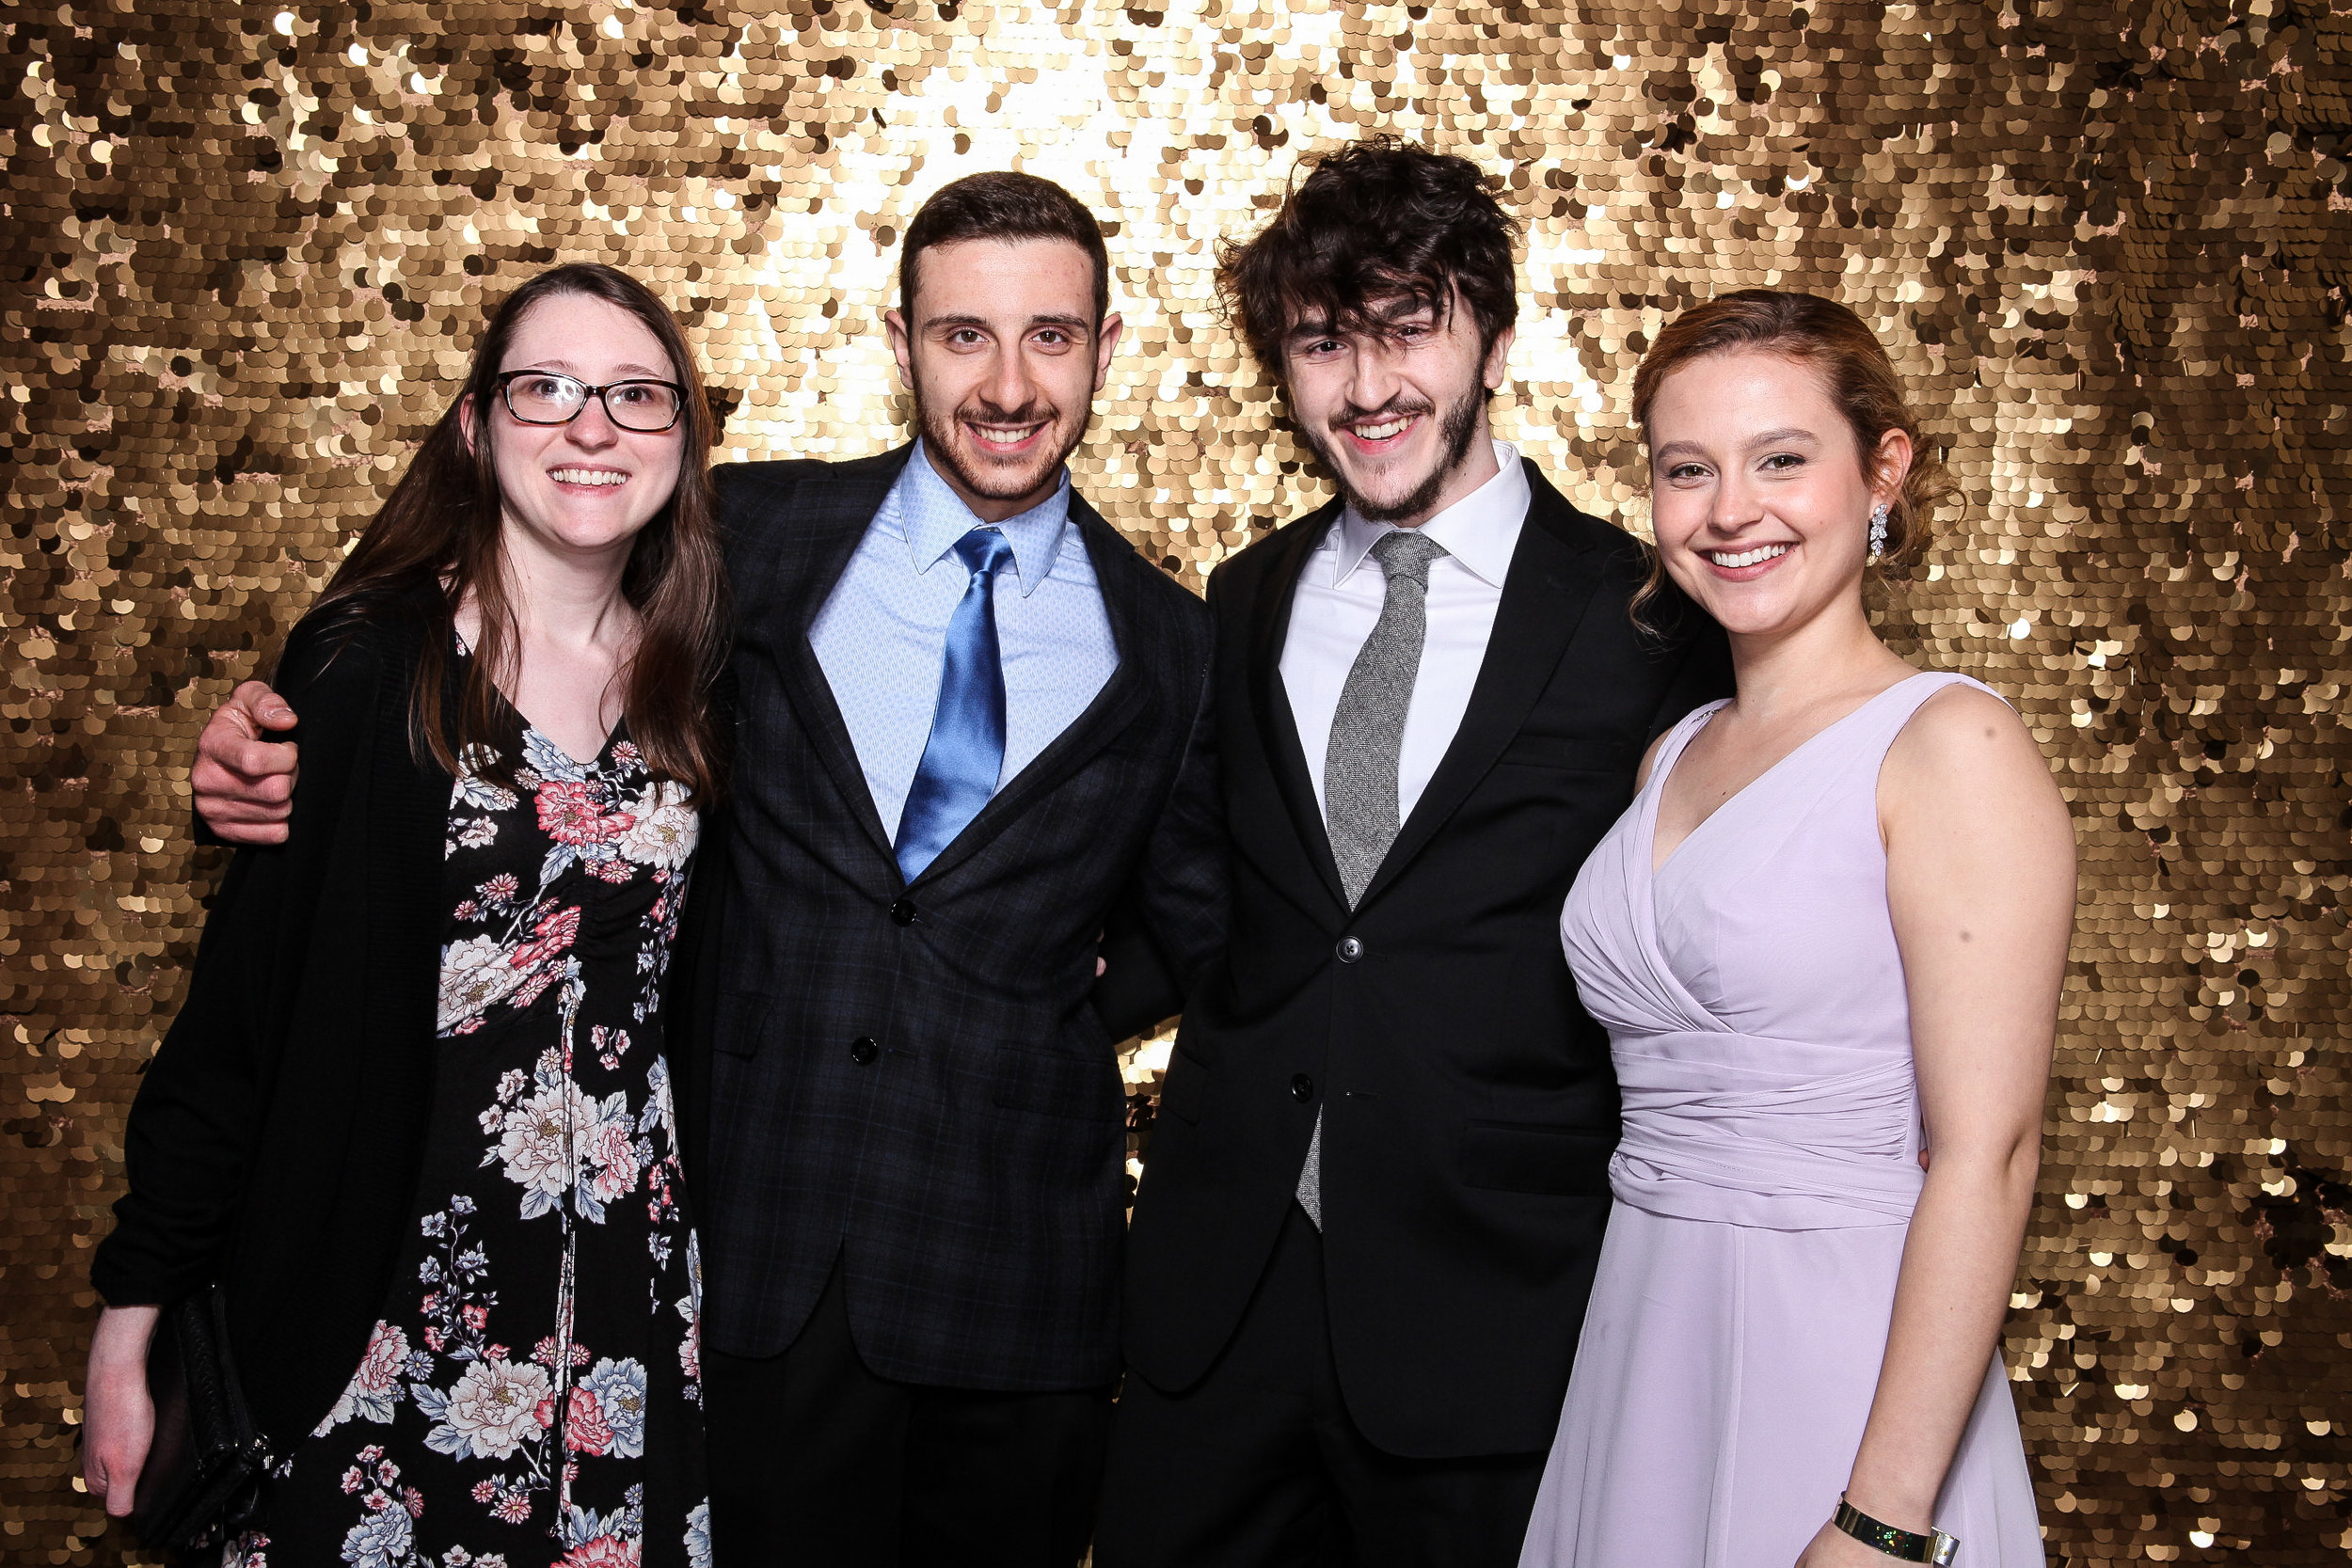 20190503_Adelphi_Senior_Formal-198.jpg